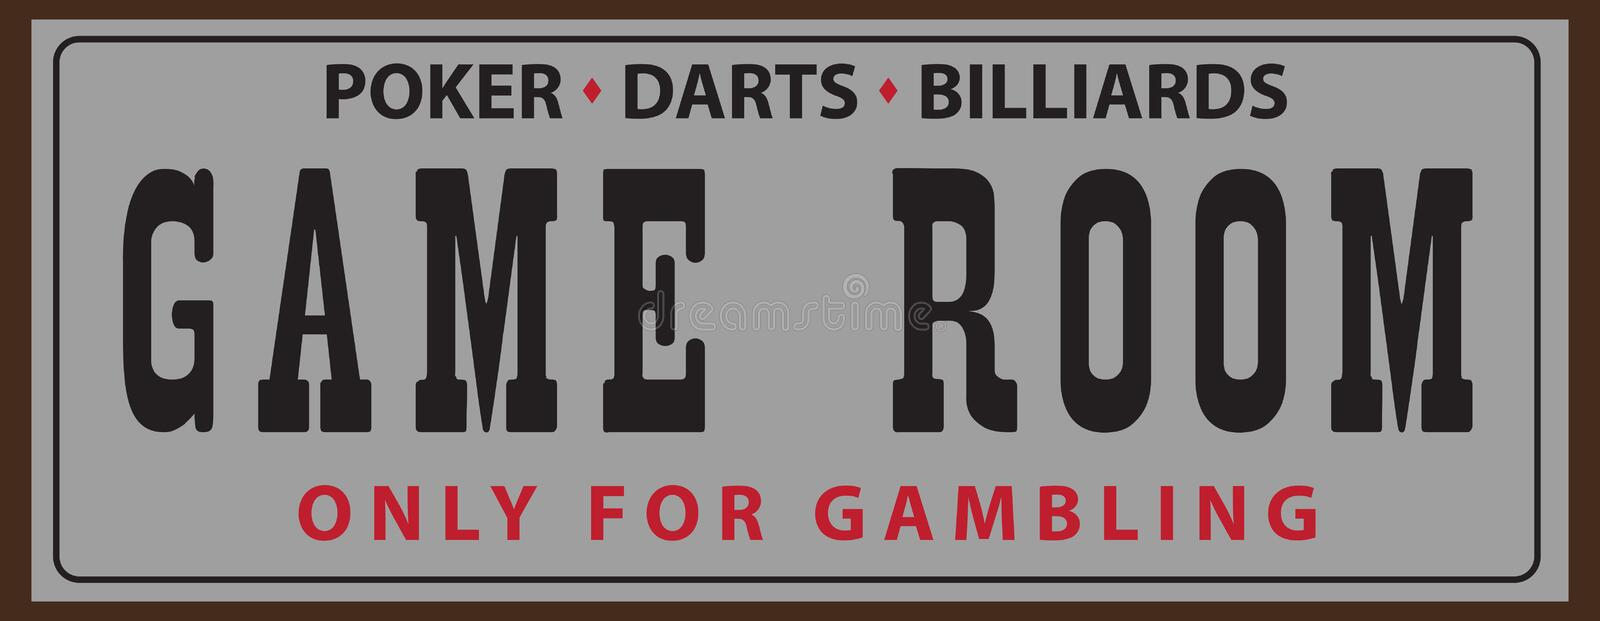 Street Pointer for Game Room. Street pointer for the Game room with billiards, poker and darts royalty free illustration